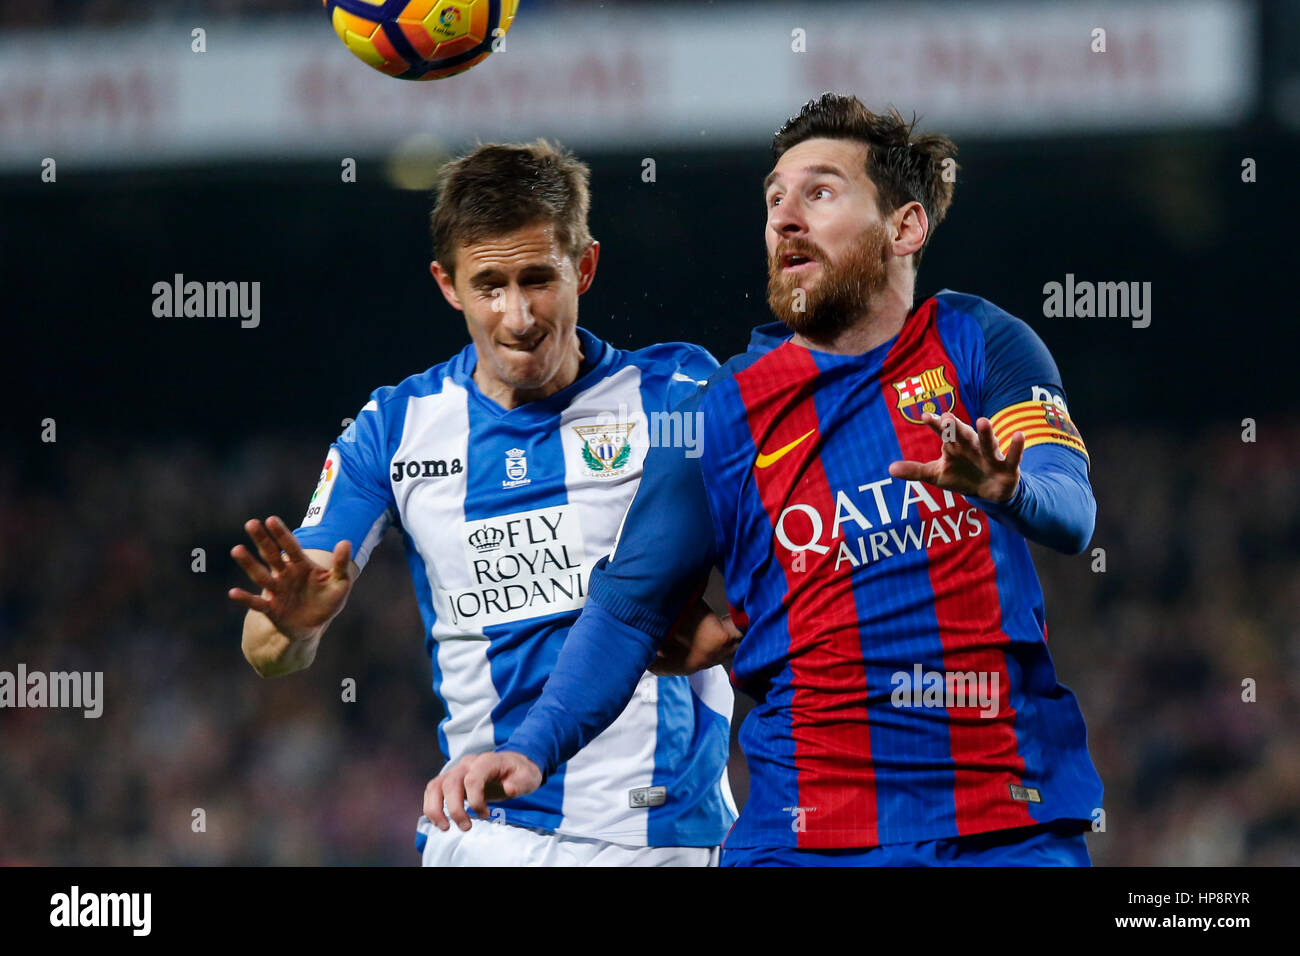 Barcelona, Spain. 19th Feb, 2017. Barcelona's Lionel Messi (R) vies with Leganes' Szymanowski during the - Stock Image